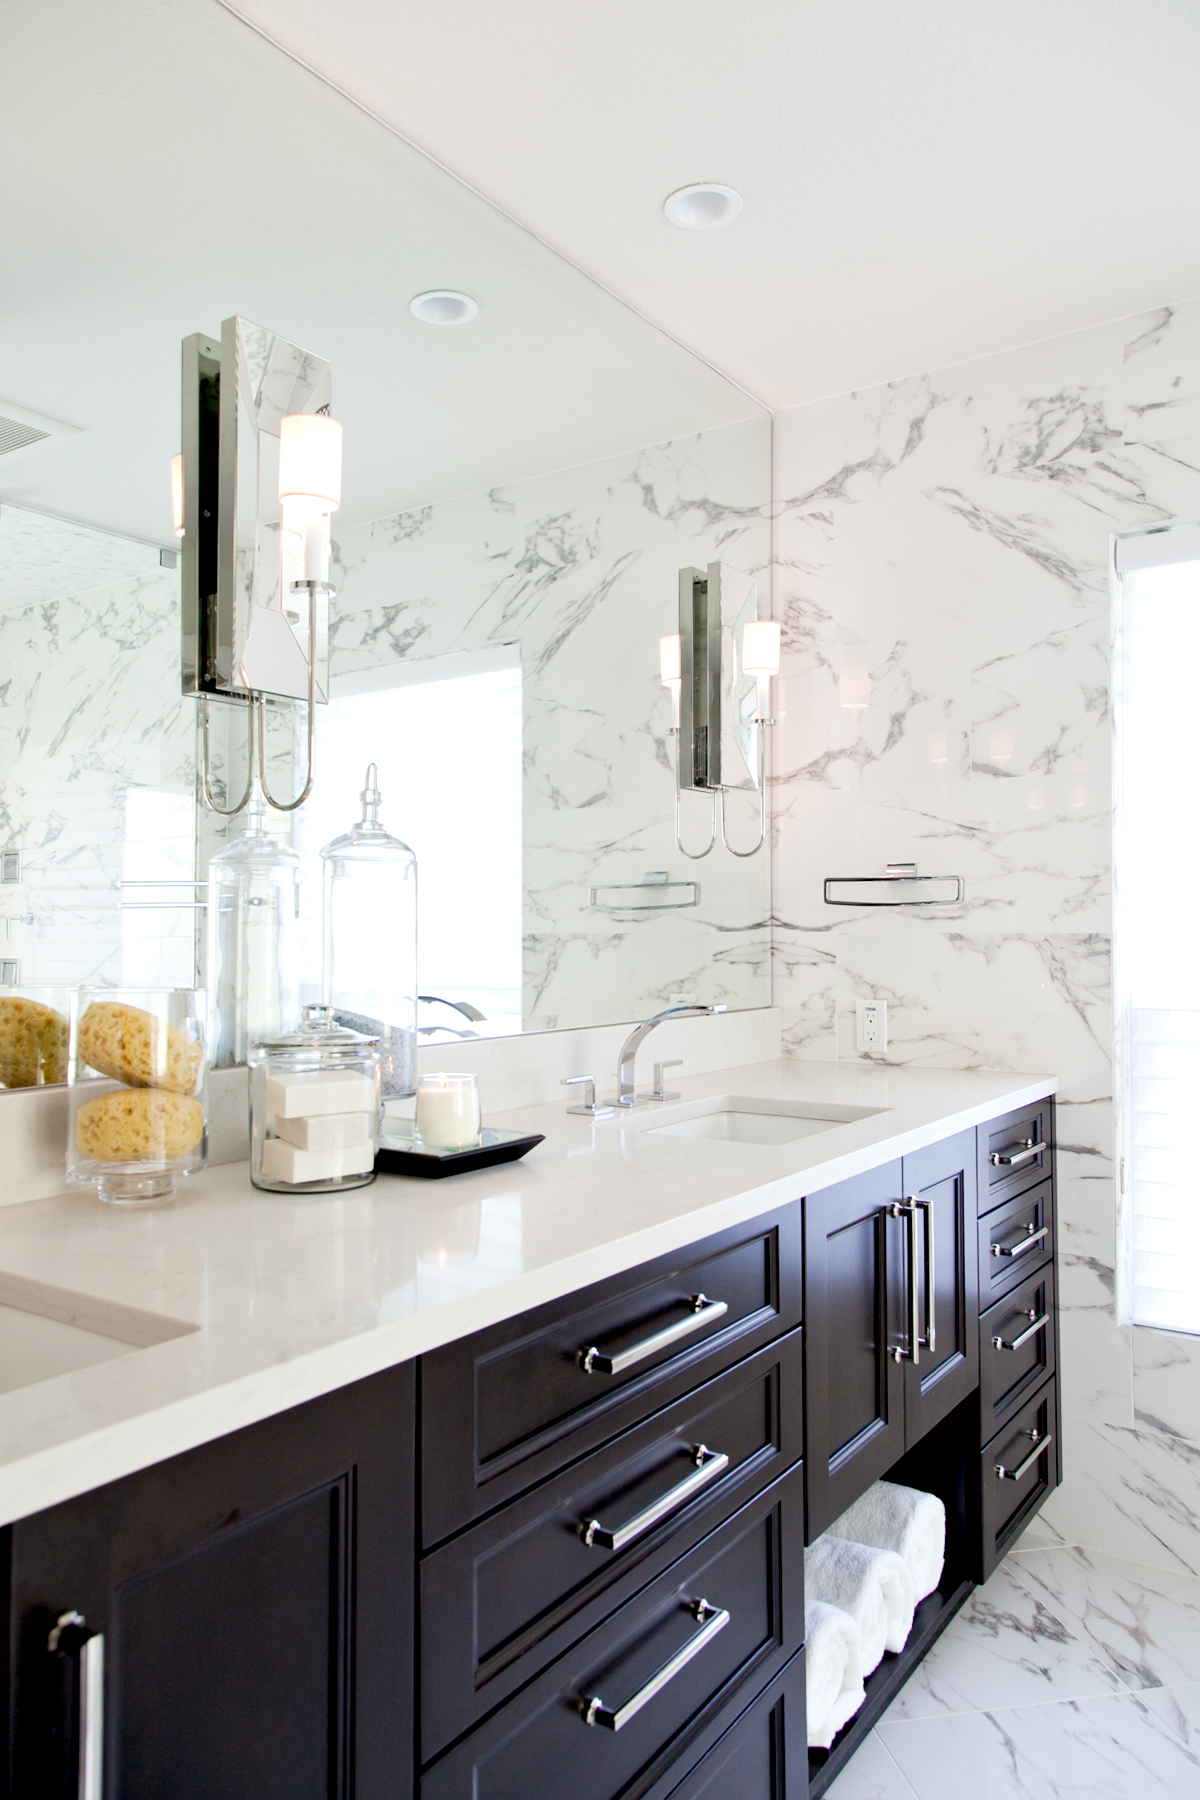 Modern Master Bathroom by Lisa Gilmore Design | Image by: Native House Photography